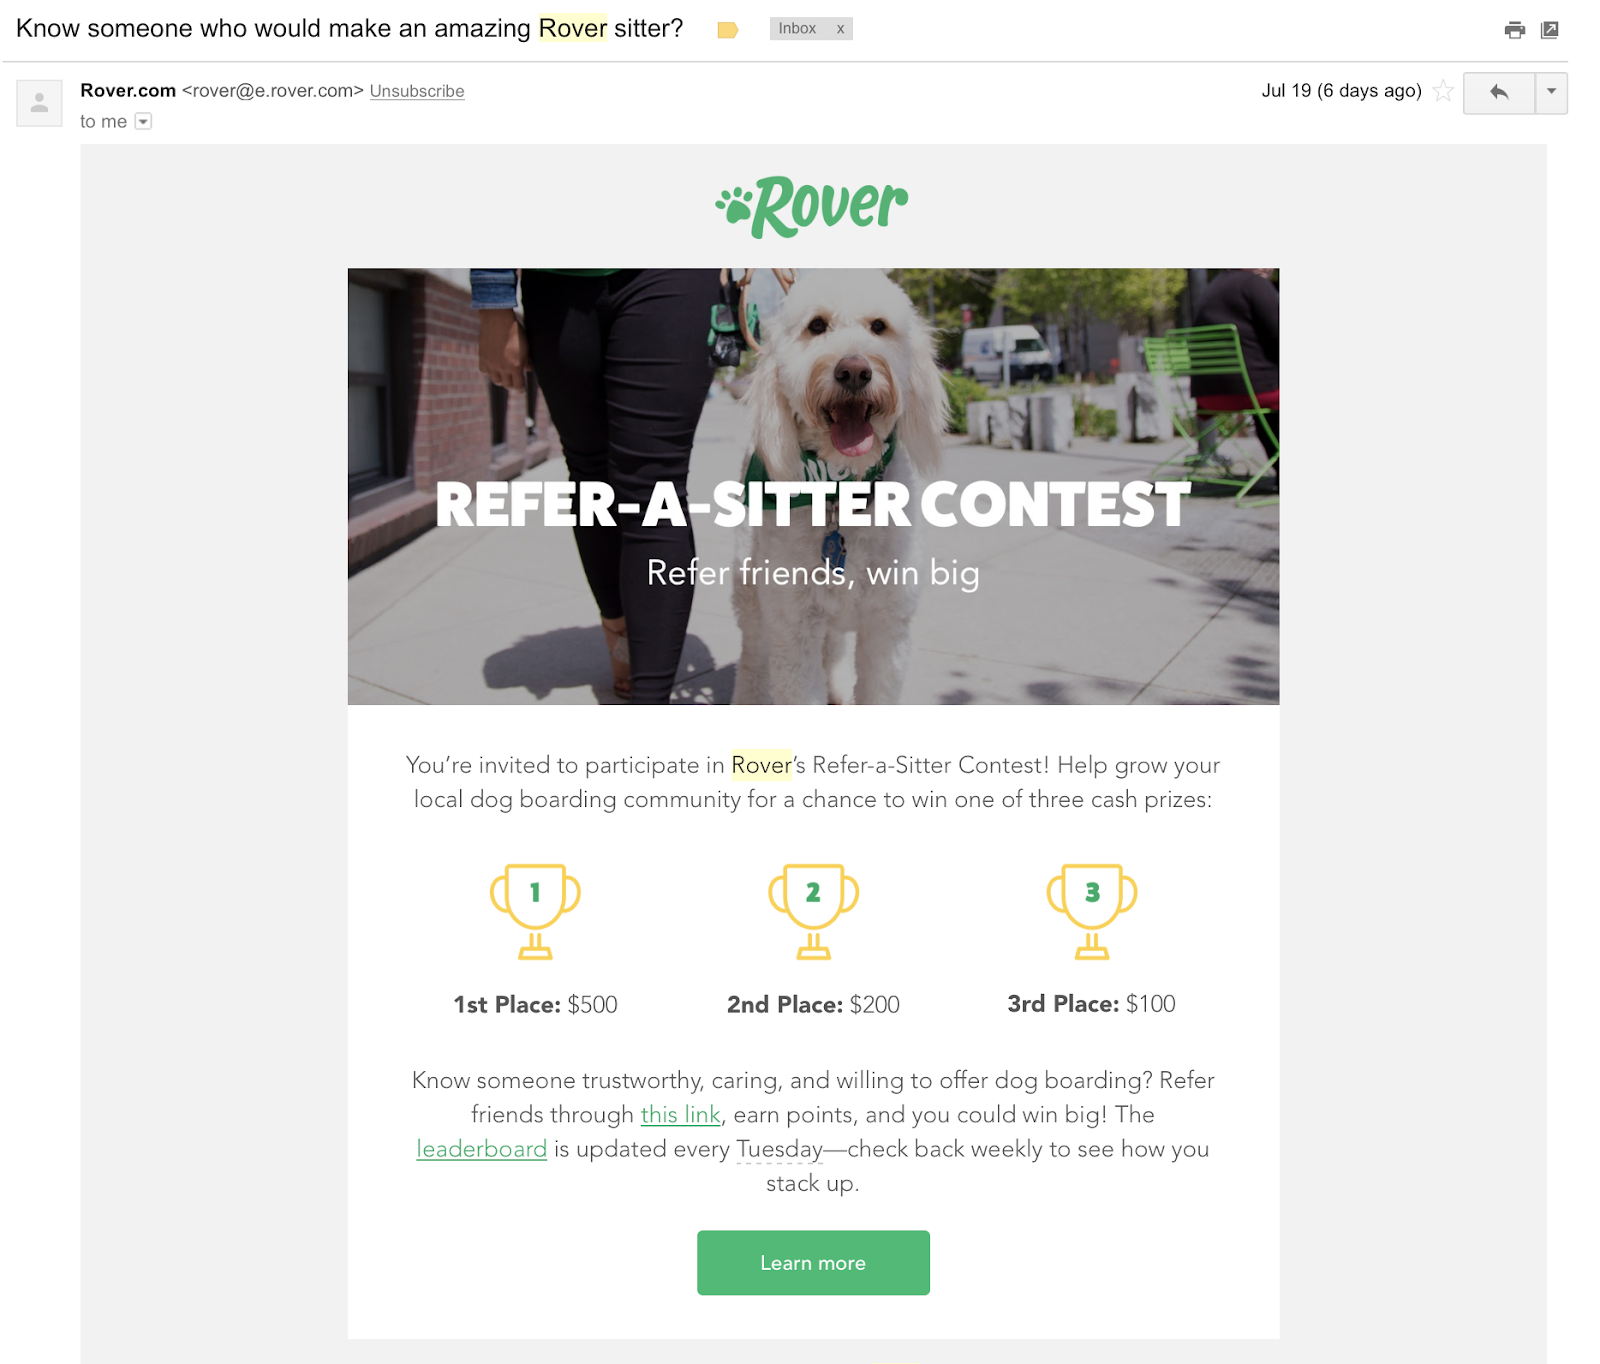 rover customer referral email